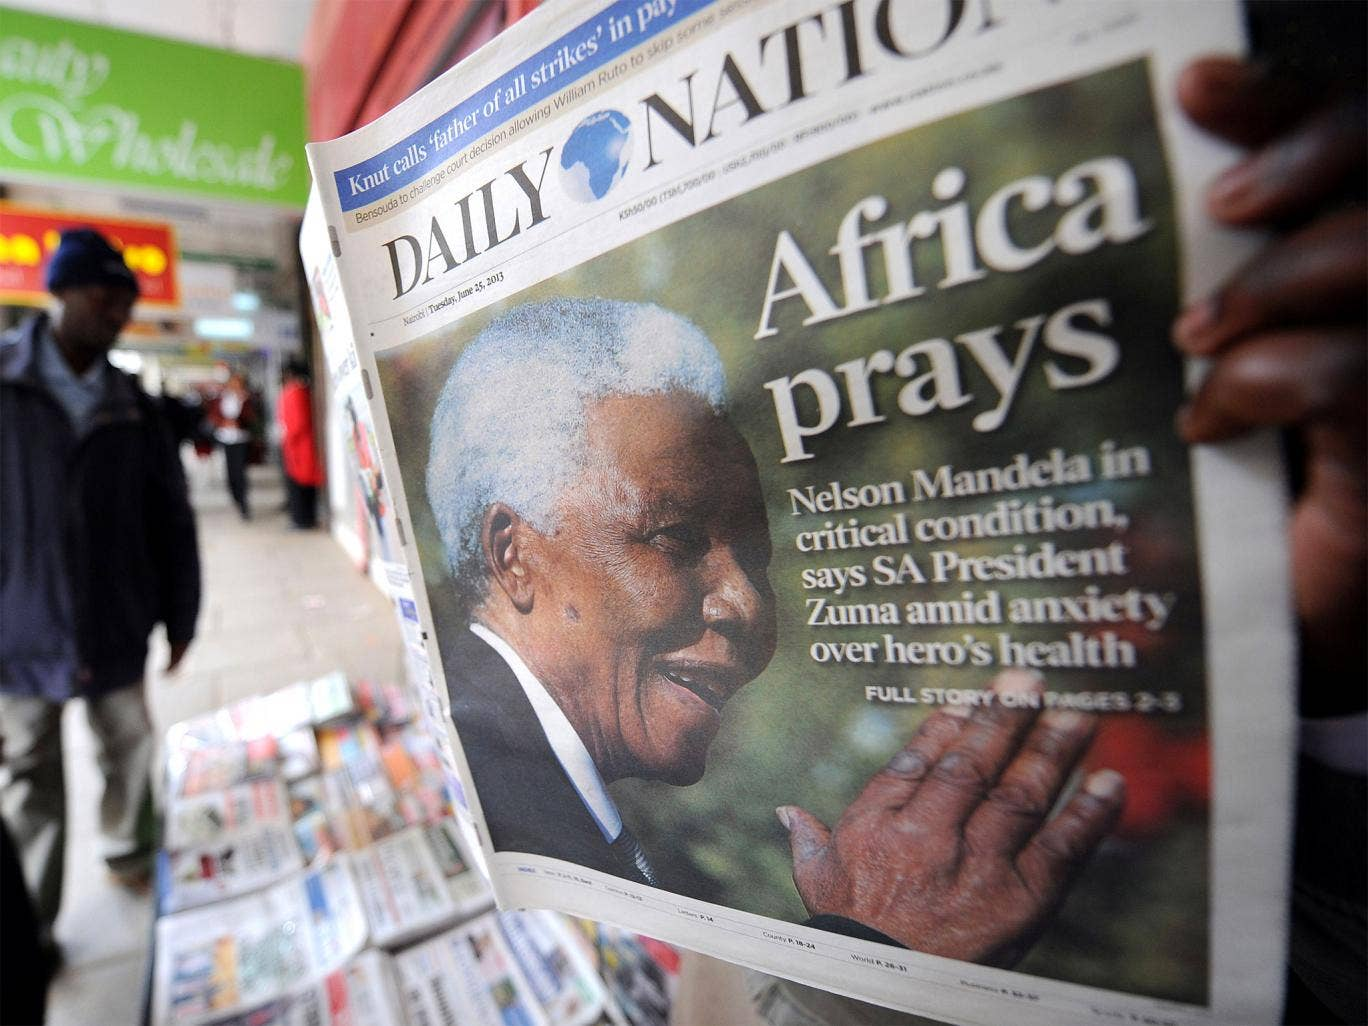 Africa prays: The front page of Kenya's 'Daily Nation'